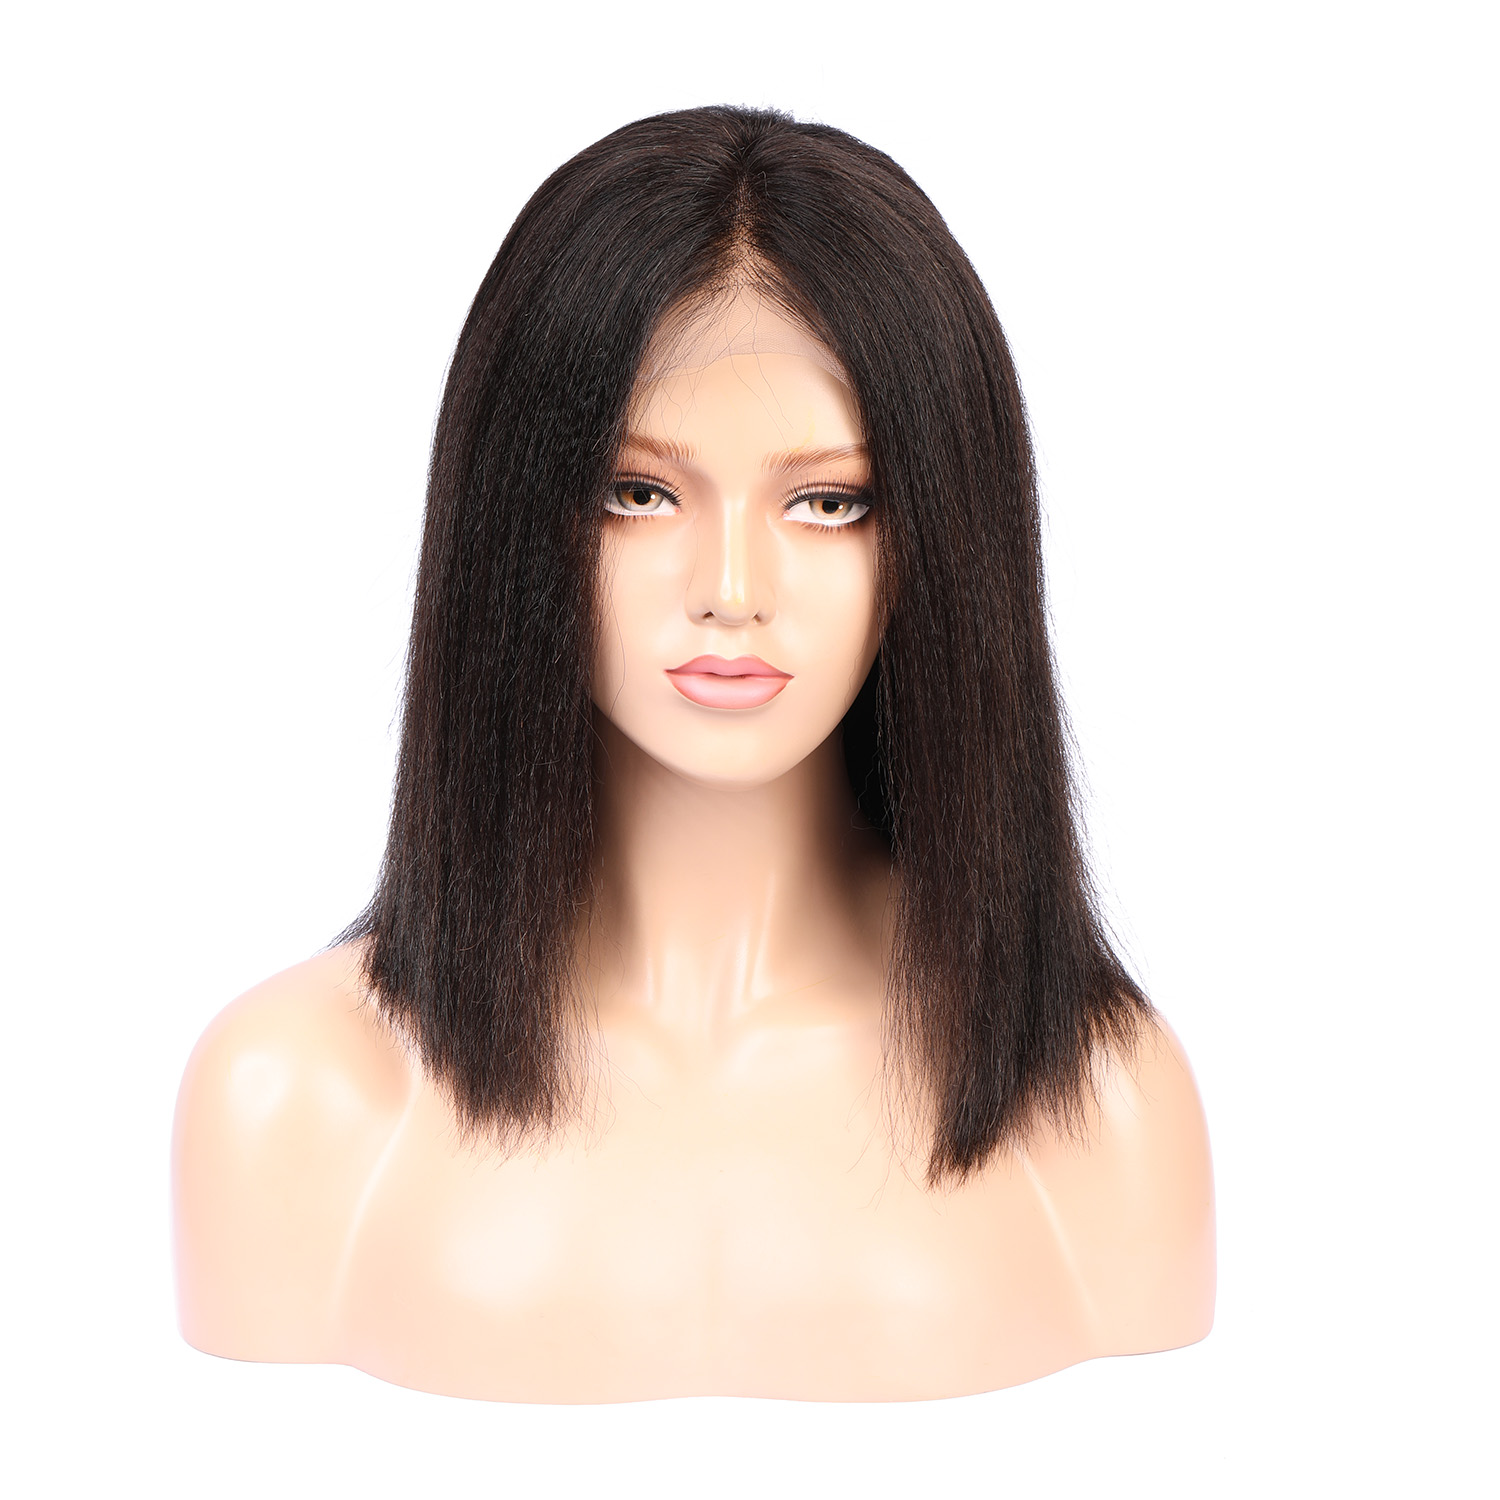 Fake Scalp Wig Light Yaki Straight 13x6 Deep Part Lace Front Human Hair Wigs Pre Plucked With Baby Hair Brazilian Remy Hair